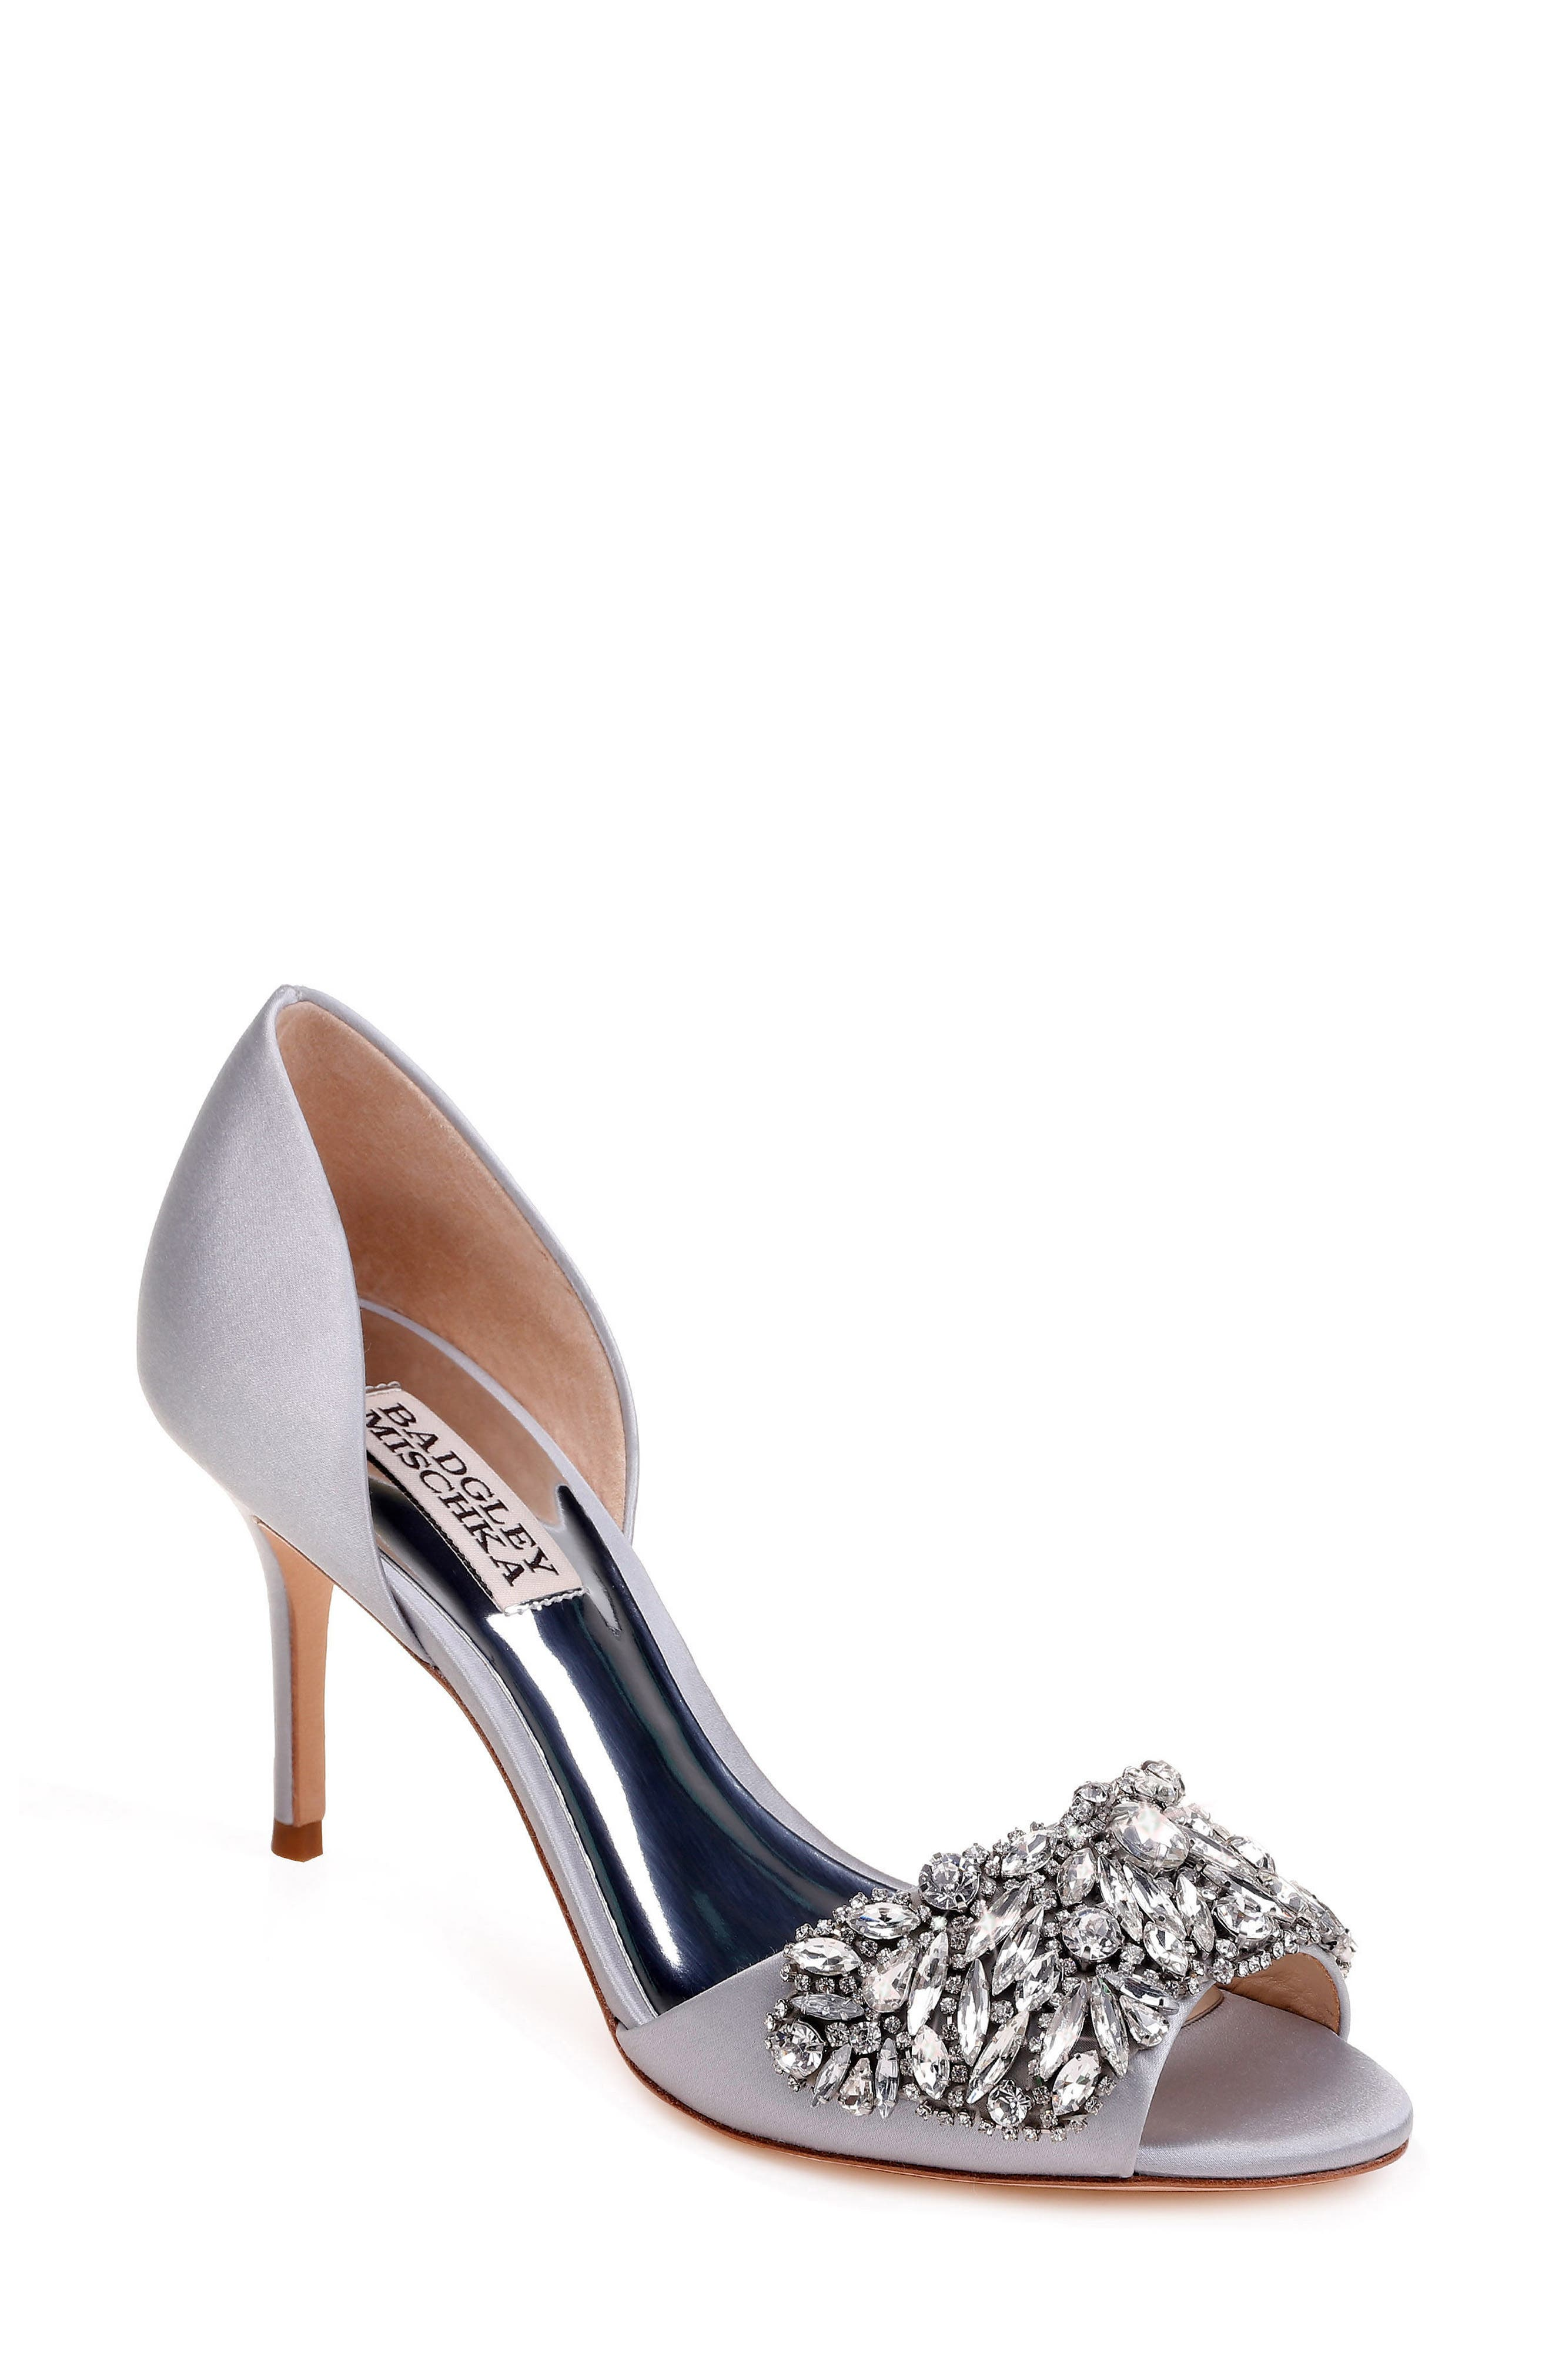 Hansen Crystal Embellished Sandal,                         Main,                         color, SILVER SATIN